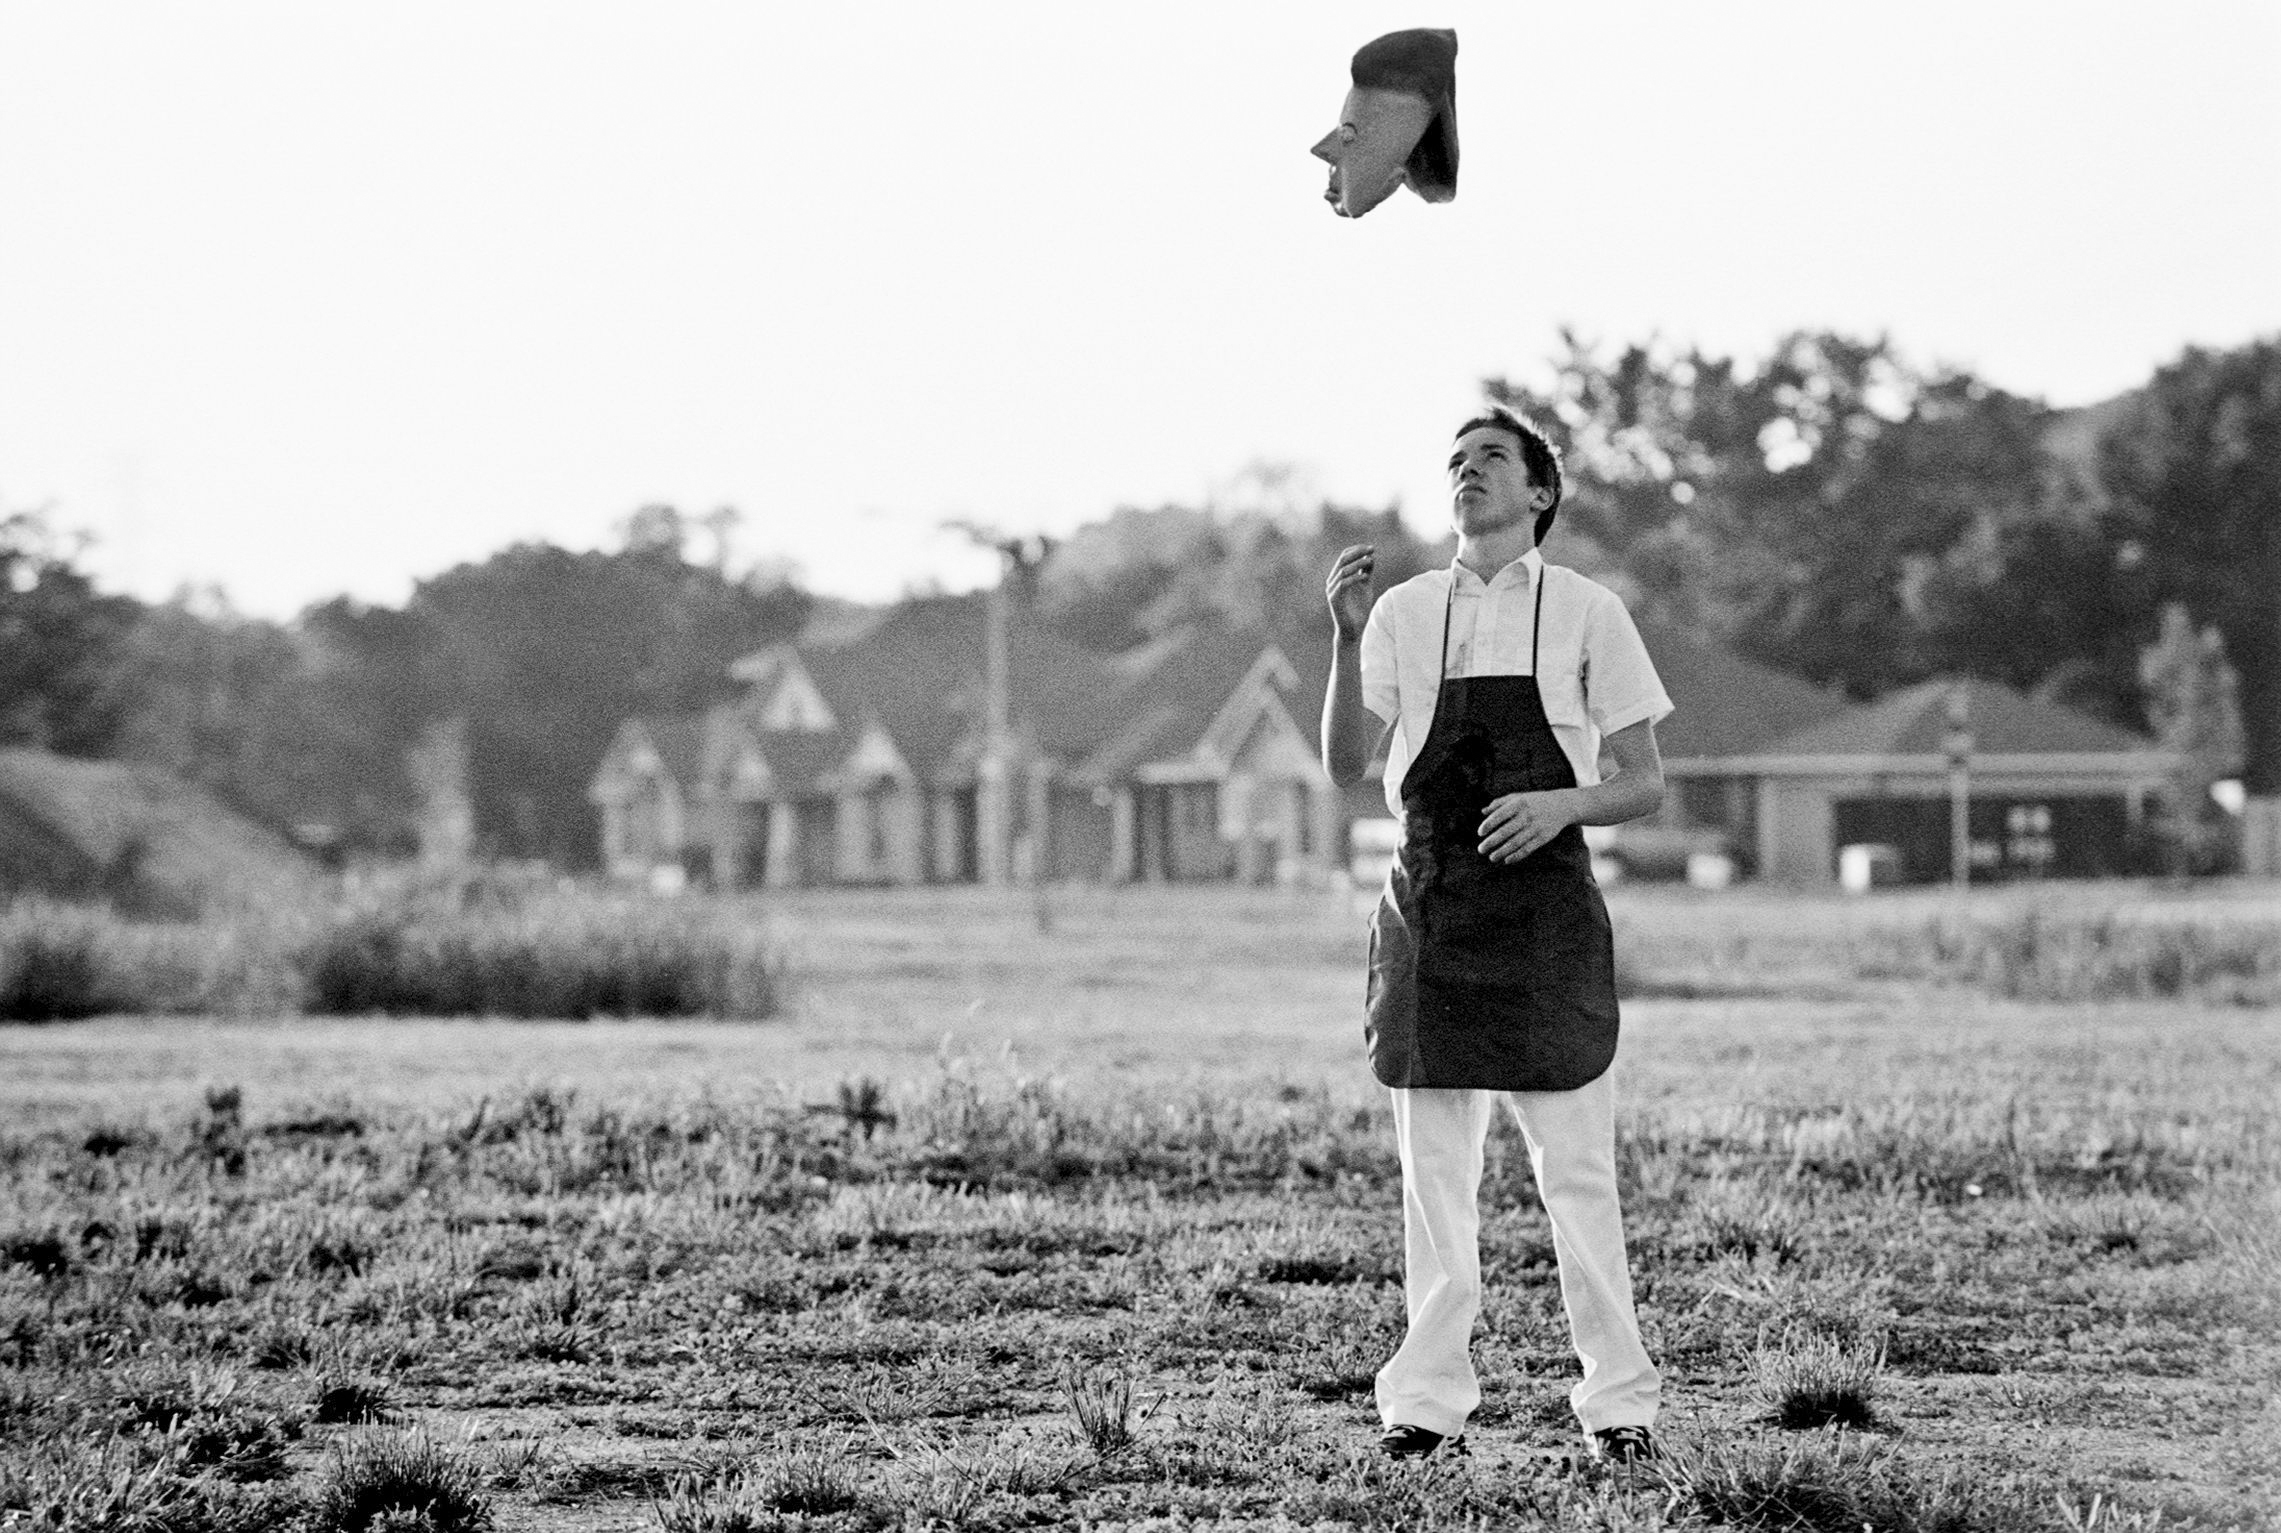 """Behind the scenes of """"Scenes From the Suburbs,"""" by Spike Jonze and Arcade Fire, Austin, Texas, April, 2010."""